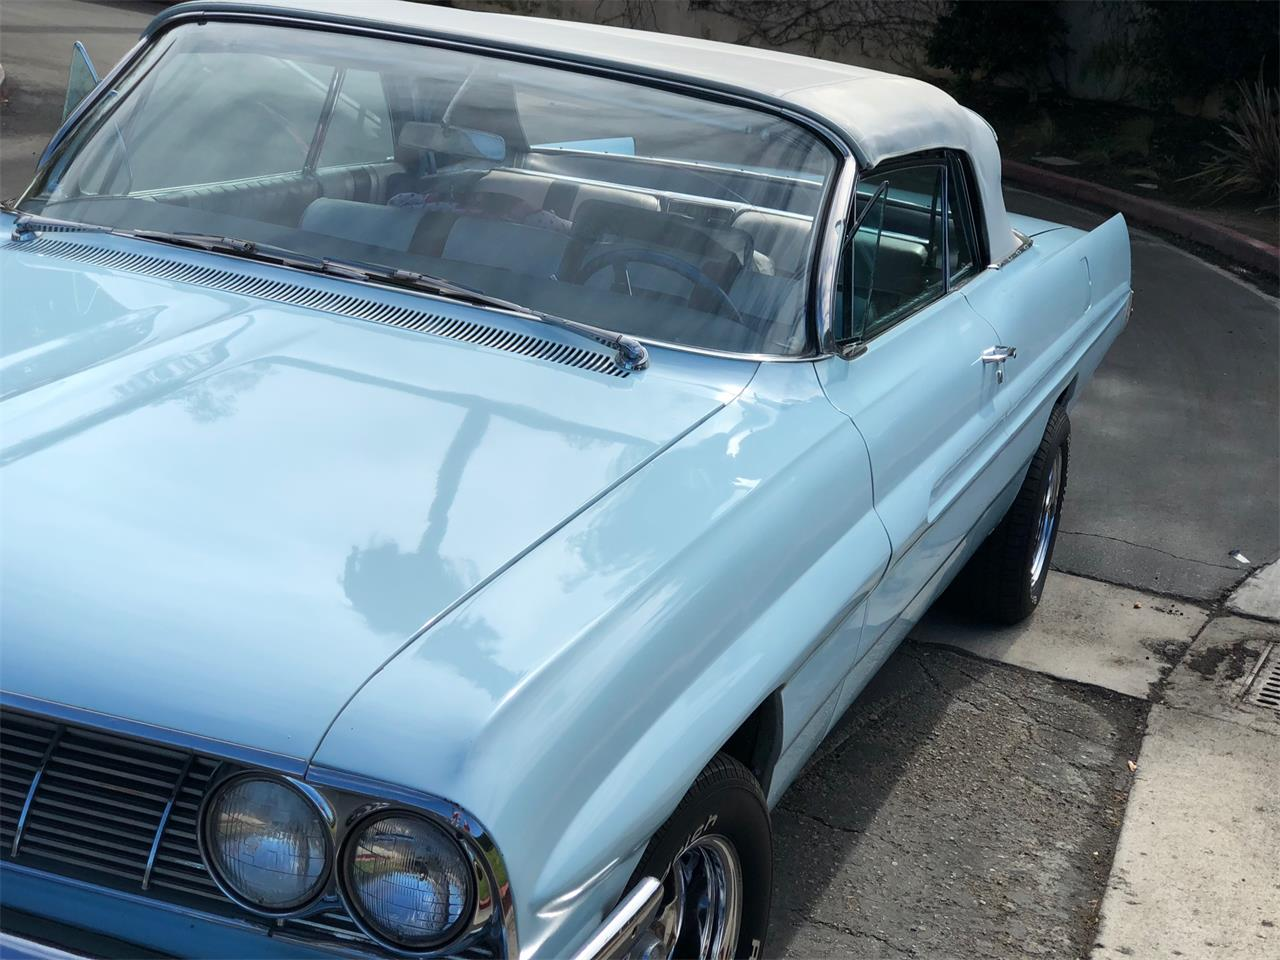 Large Picture of Classic '61 Pontiac Bonneville located in California Offered by a Private Seller - ASQZ